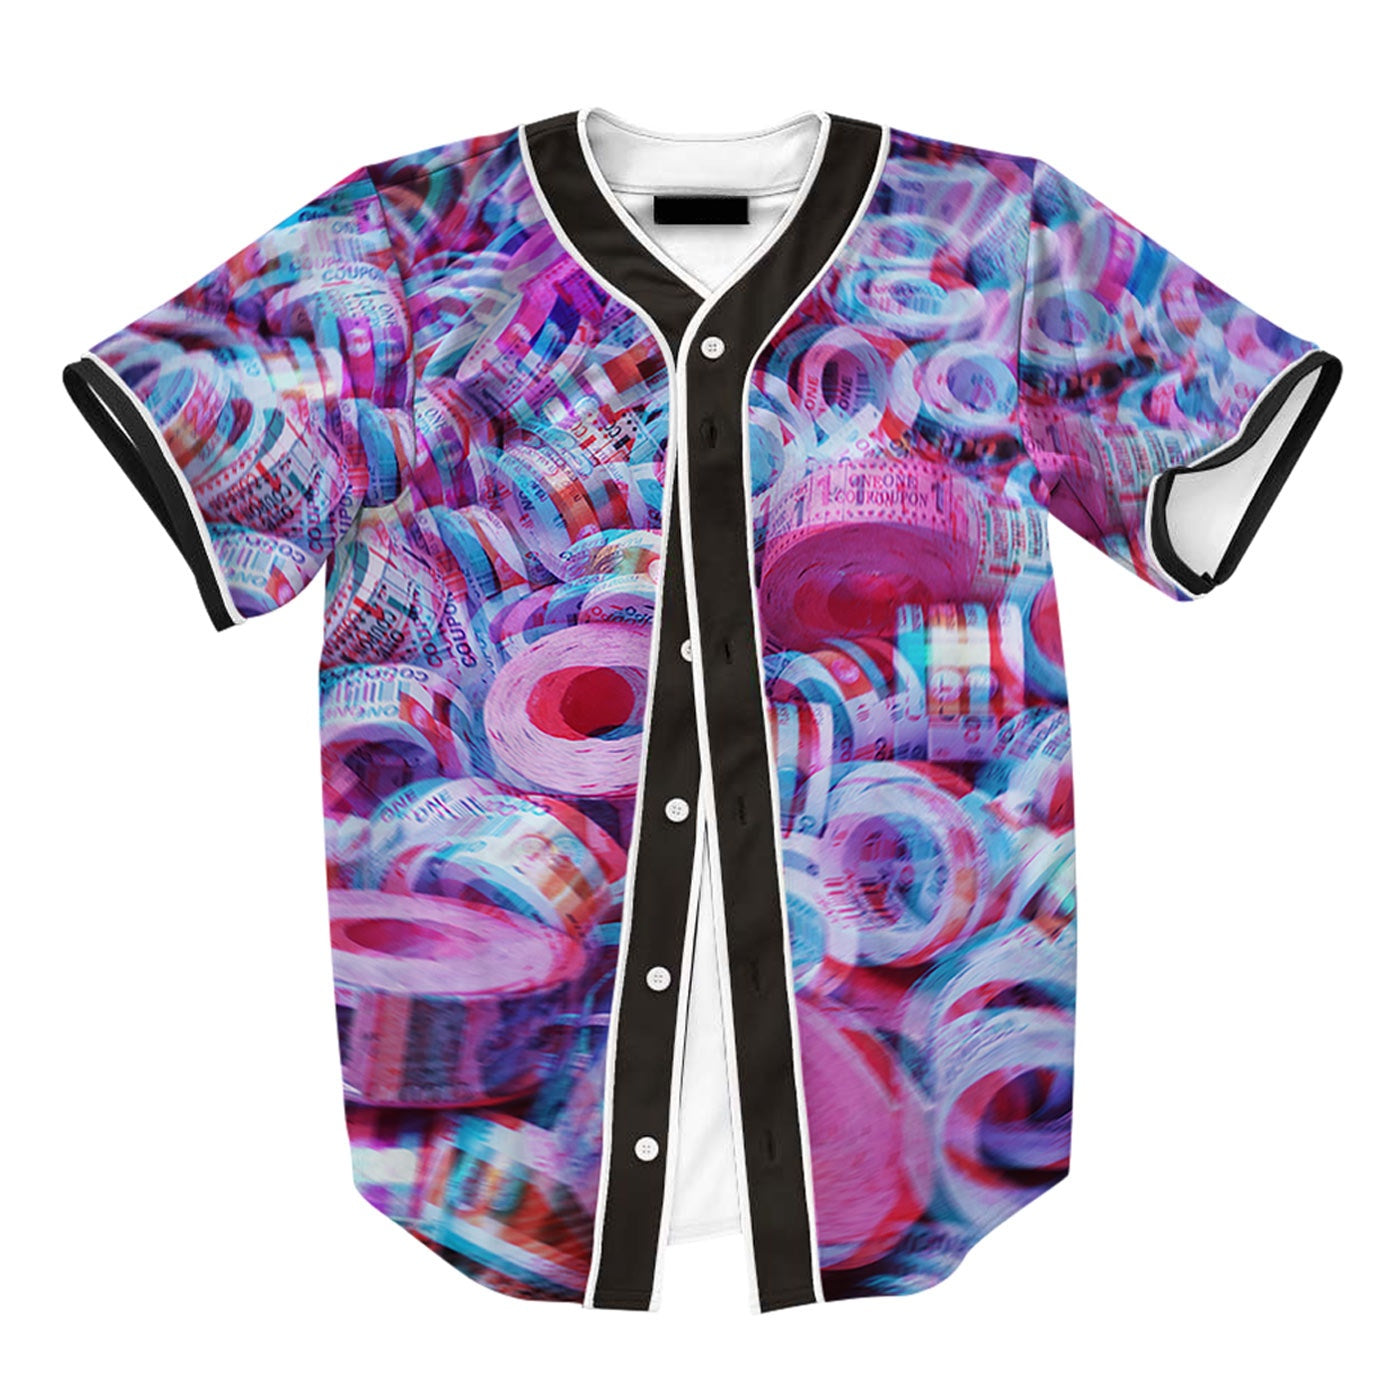 Psychedelic Jersey